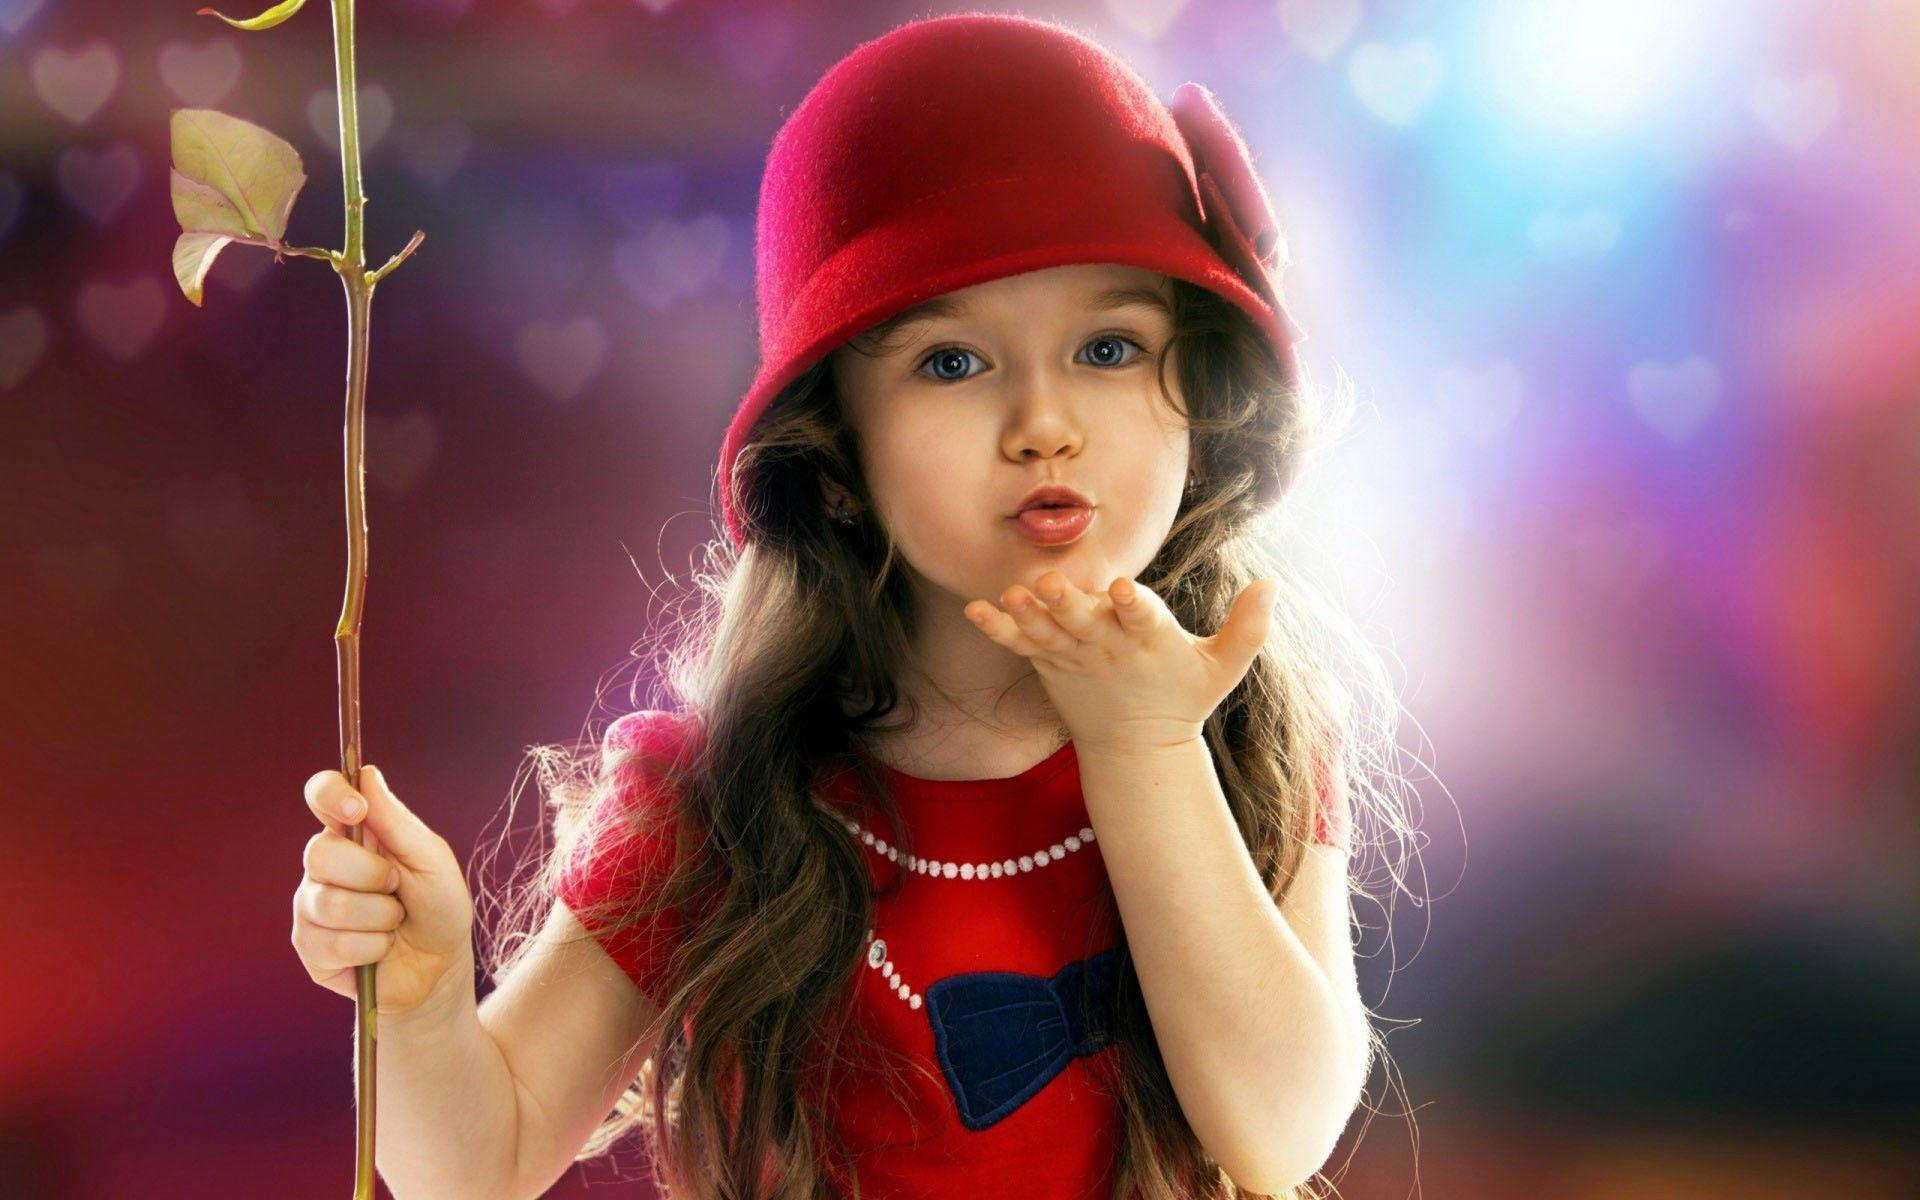 cute baby girl wallpapers - wallpaper cave